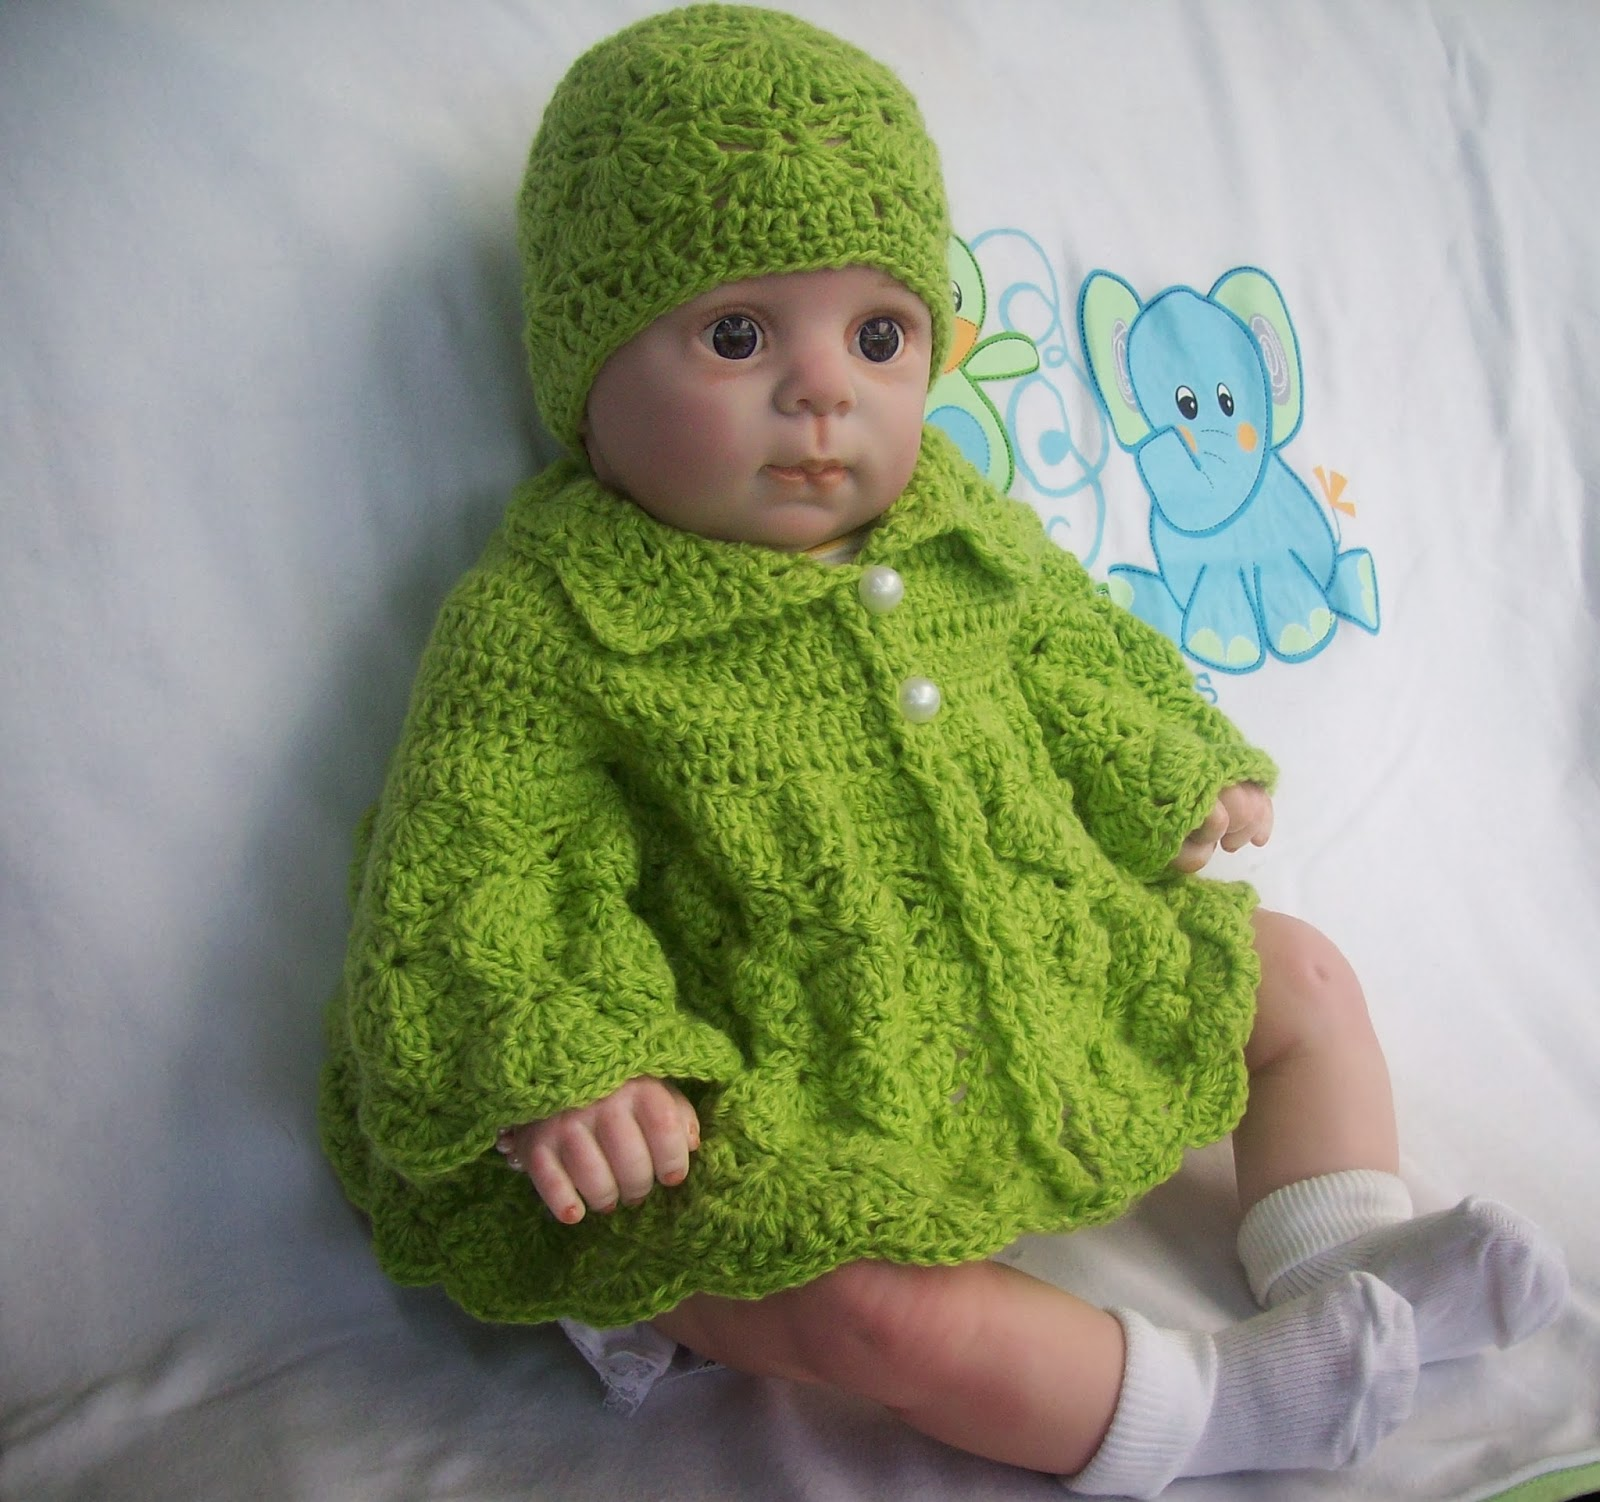 Hoodie Knitting Pattern For Babies And Toddlers : Free Crochet Patterns By Cats-Rockin-Crochet